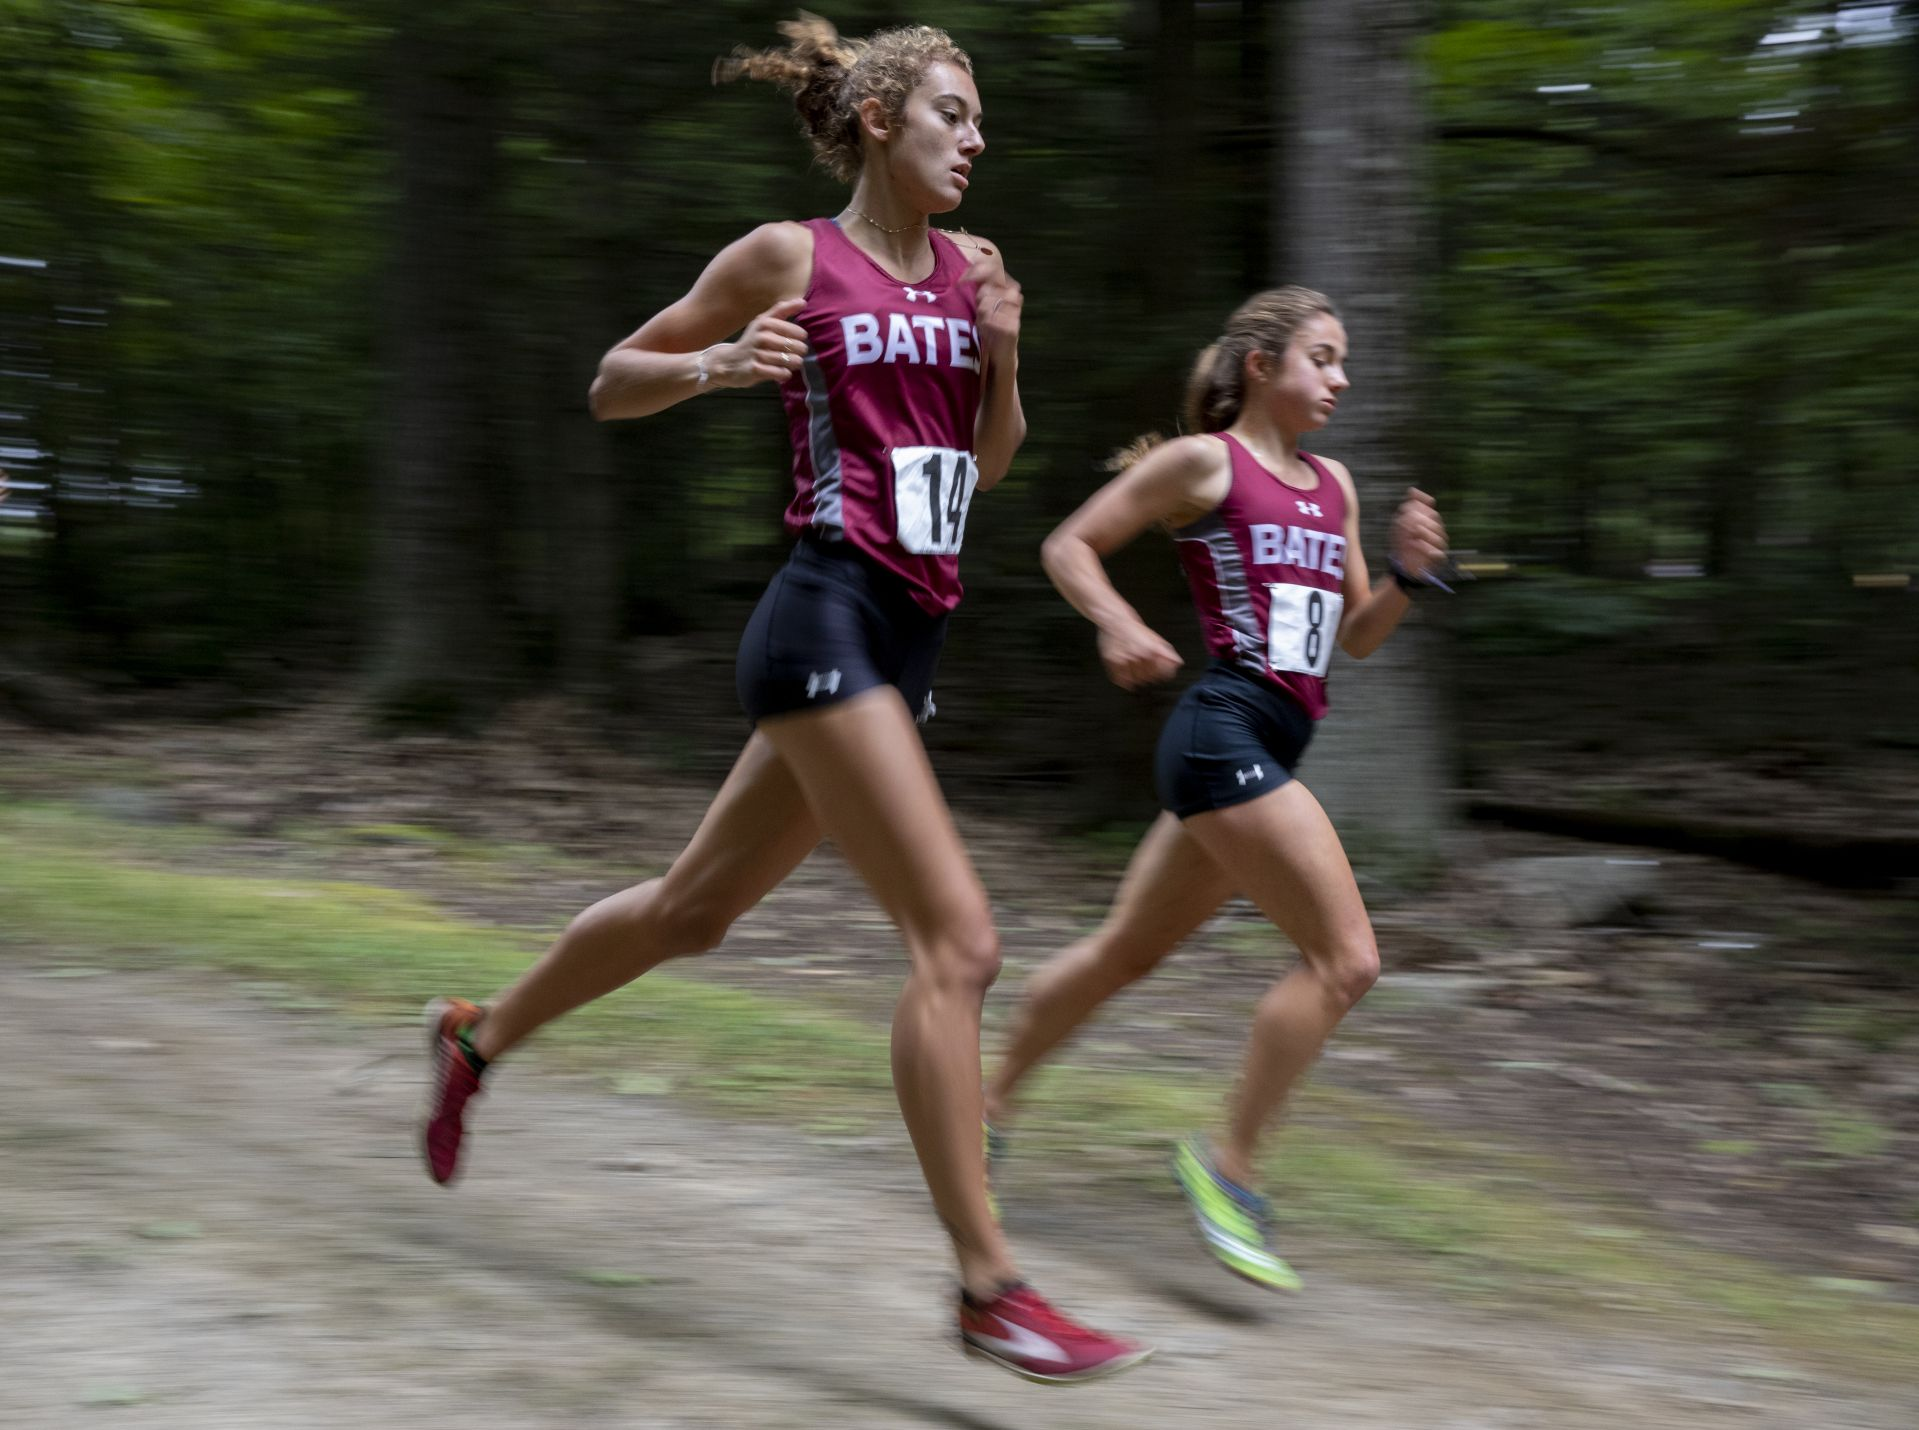 Elise Lambert '22 (left) of Amherst, N.H., and Lily Harding '23 of Kenfield, Calif., navigate the 5K course during the Bates Invitational cross country meet at Pineland Farms in nearby Gray, a tuneup for October's Maine State Meet, which the Bobcats have won three straight years. (Phyllis Graber Jensen/Bates College)